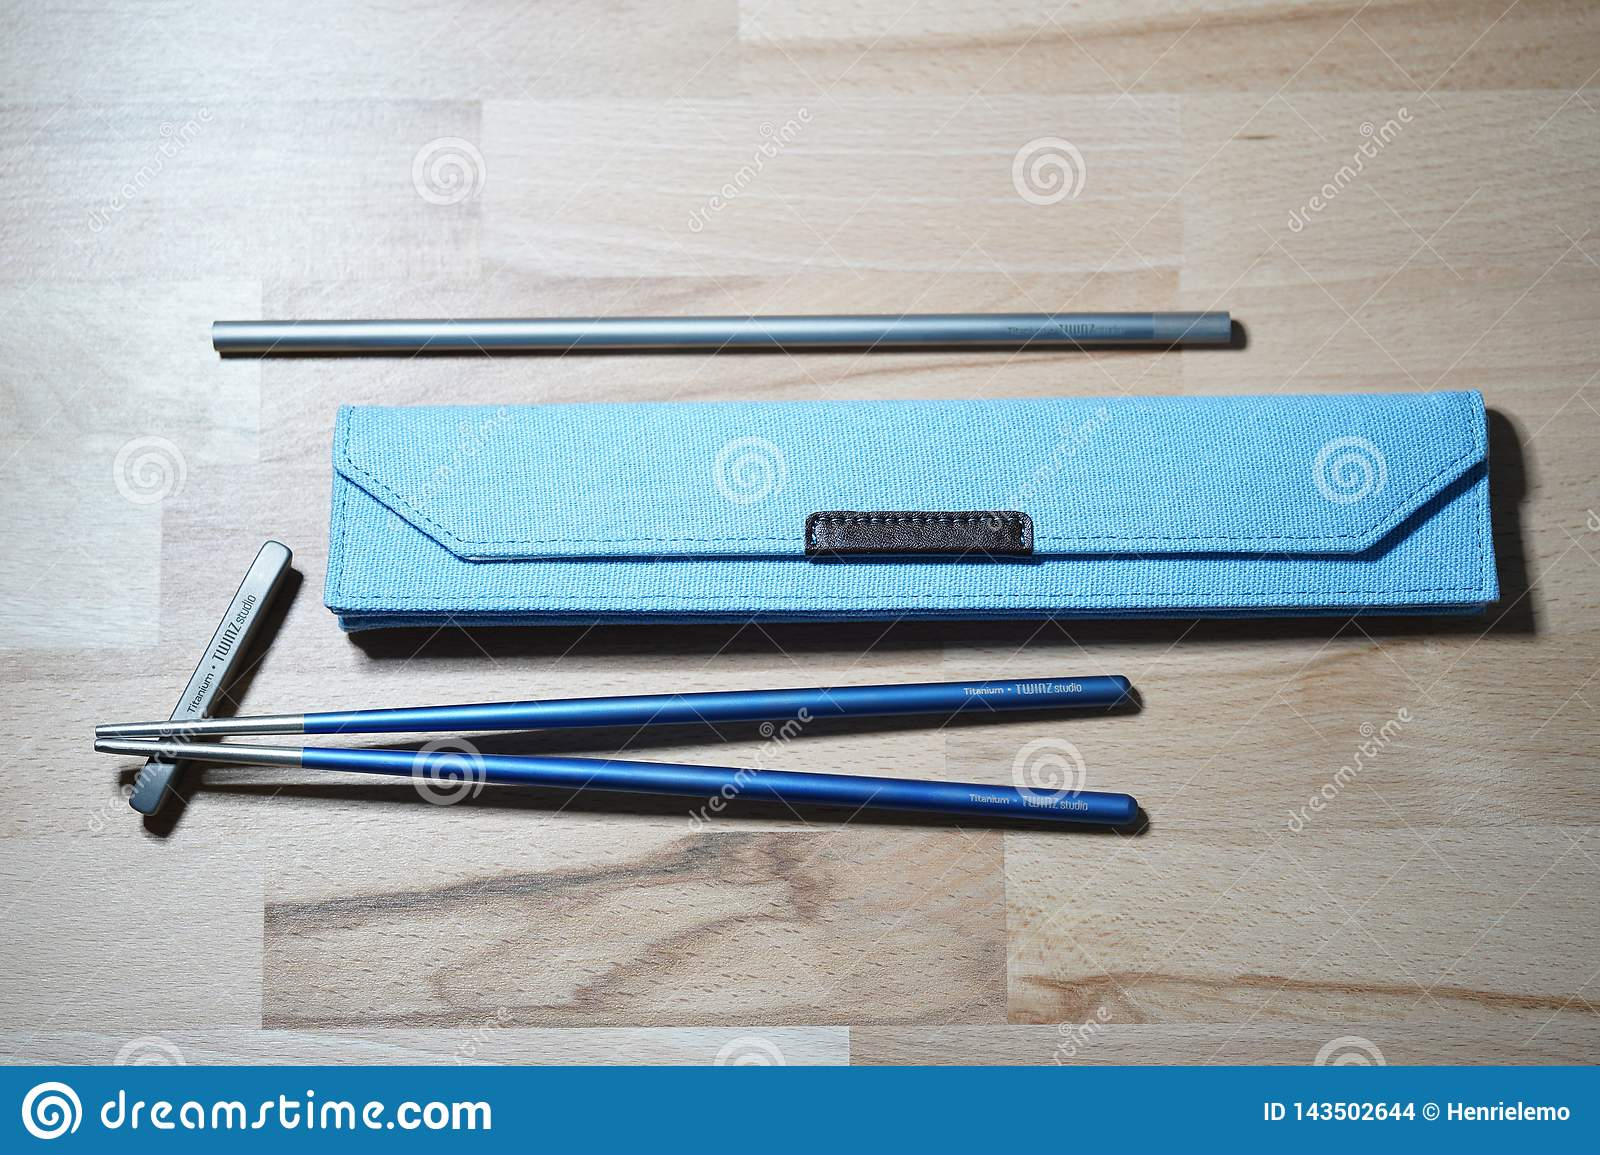 Helsinki, Finland - March 27, 2019: Chopsticks and straw made of titanium for sustainable purposes and not using plastic ones.